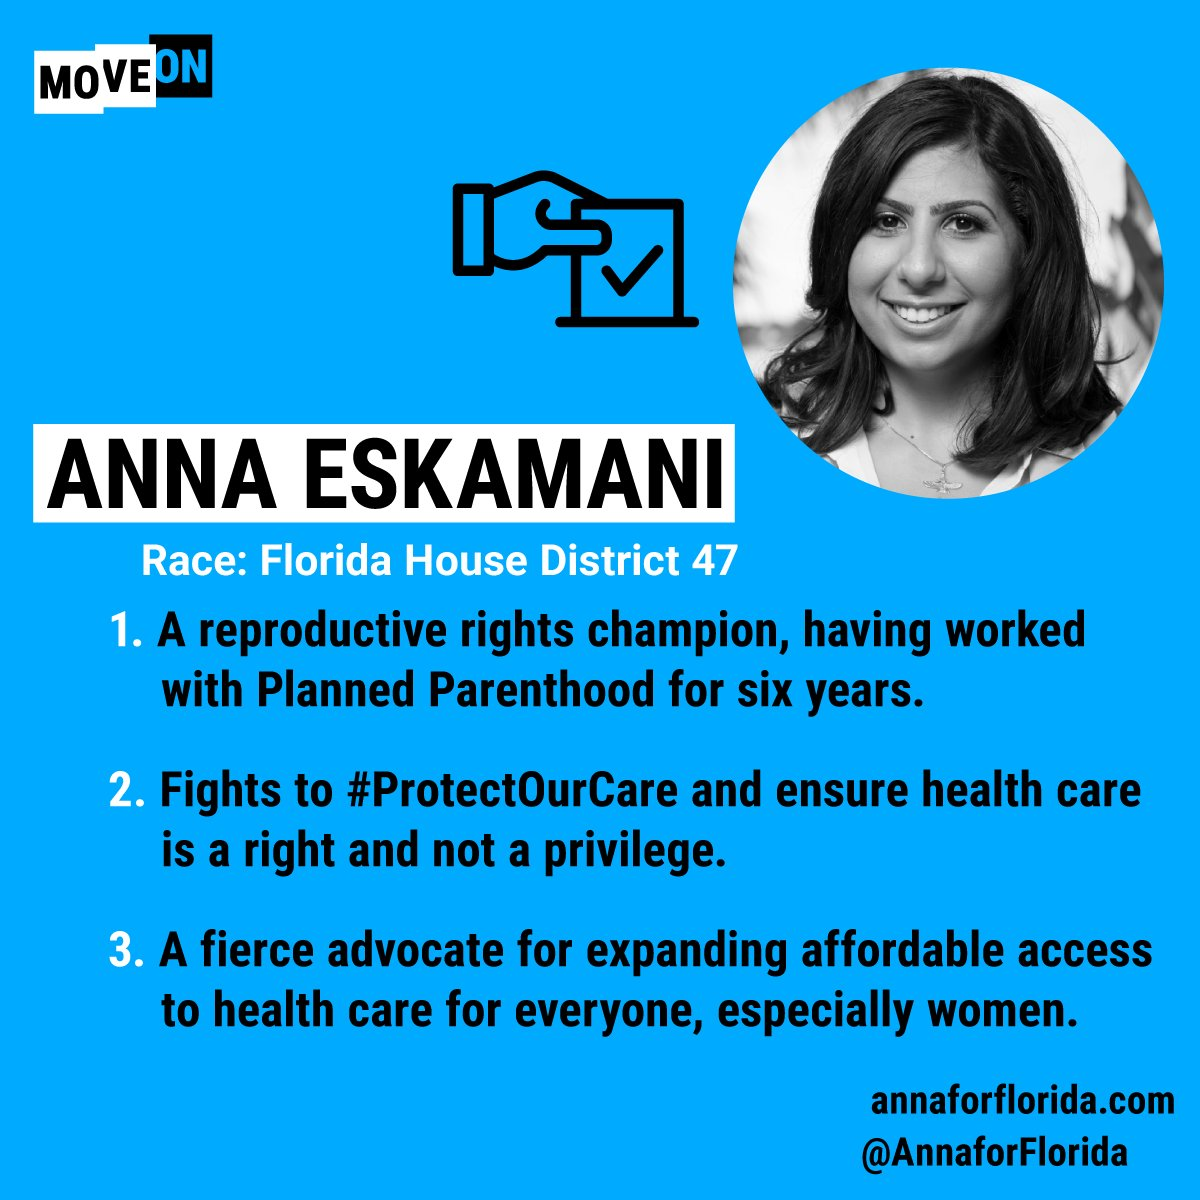 #Florida! @AnnaForFlorida is running for #FL47 and here are just three reasons to knock on some doors & ! Yo#GOTVu can learn about MoveOn's list of progressive champs here: https://t.co/jtinSPTjLI